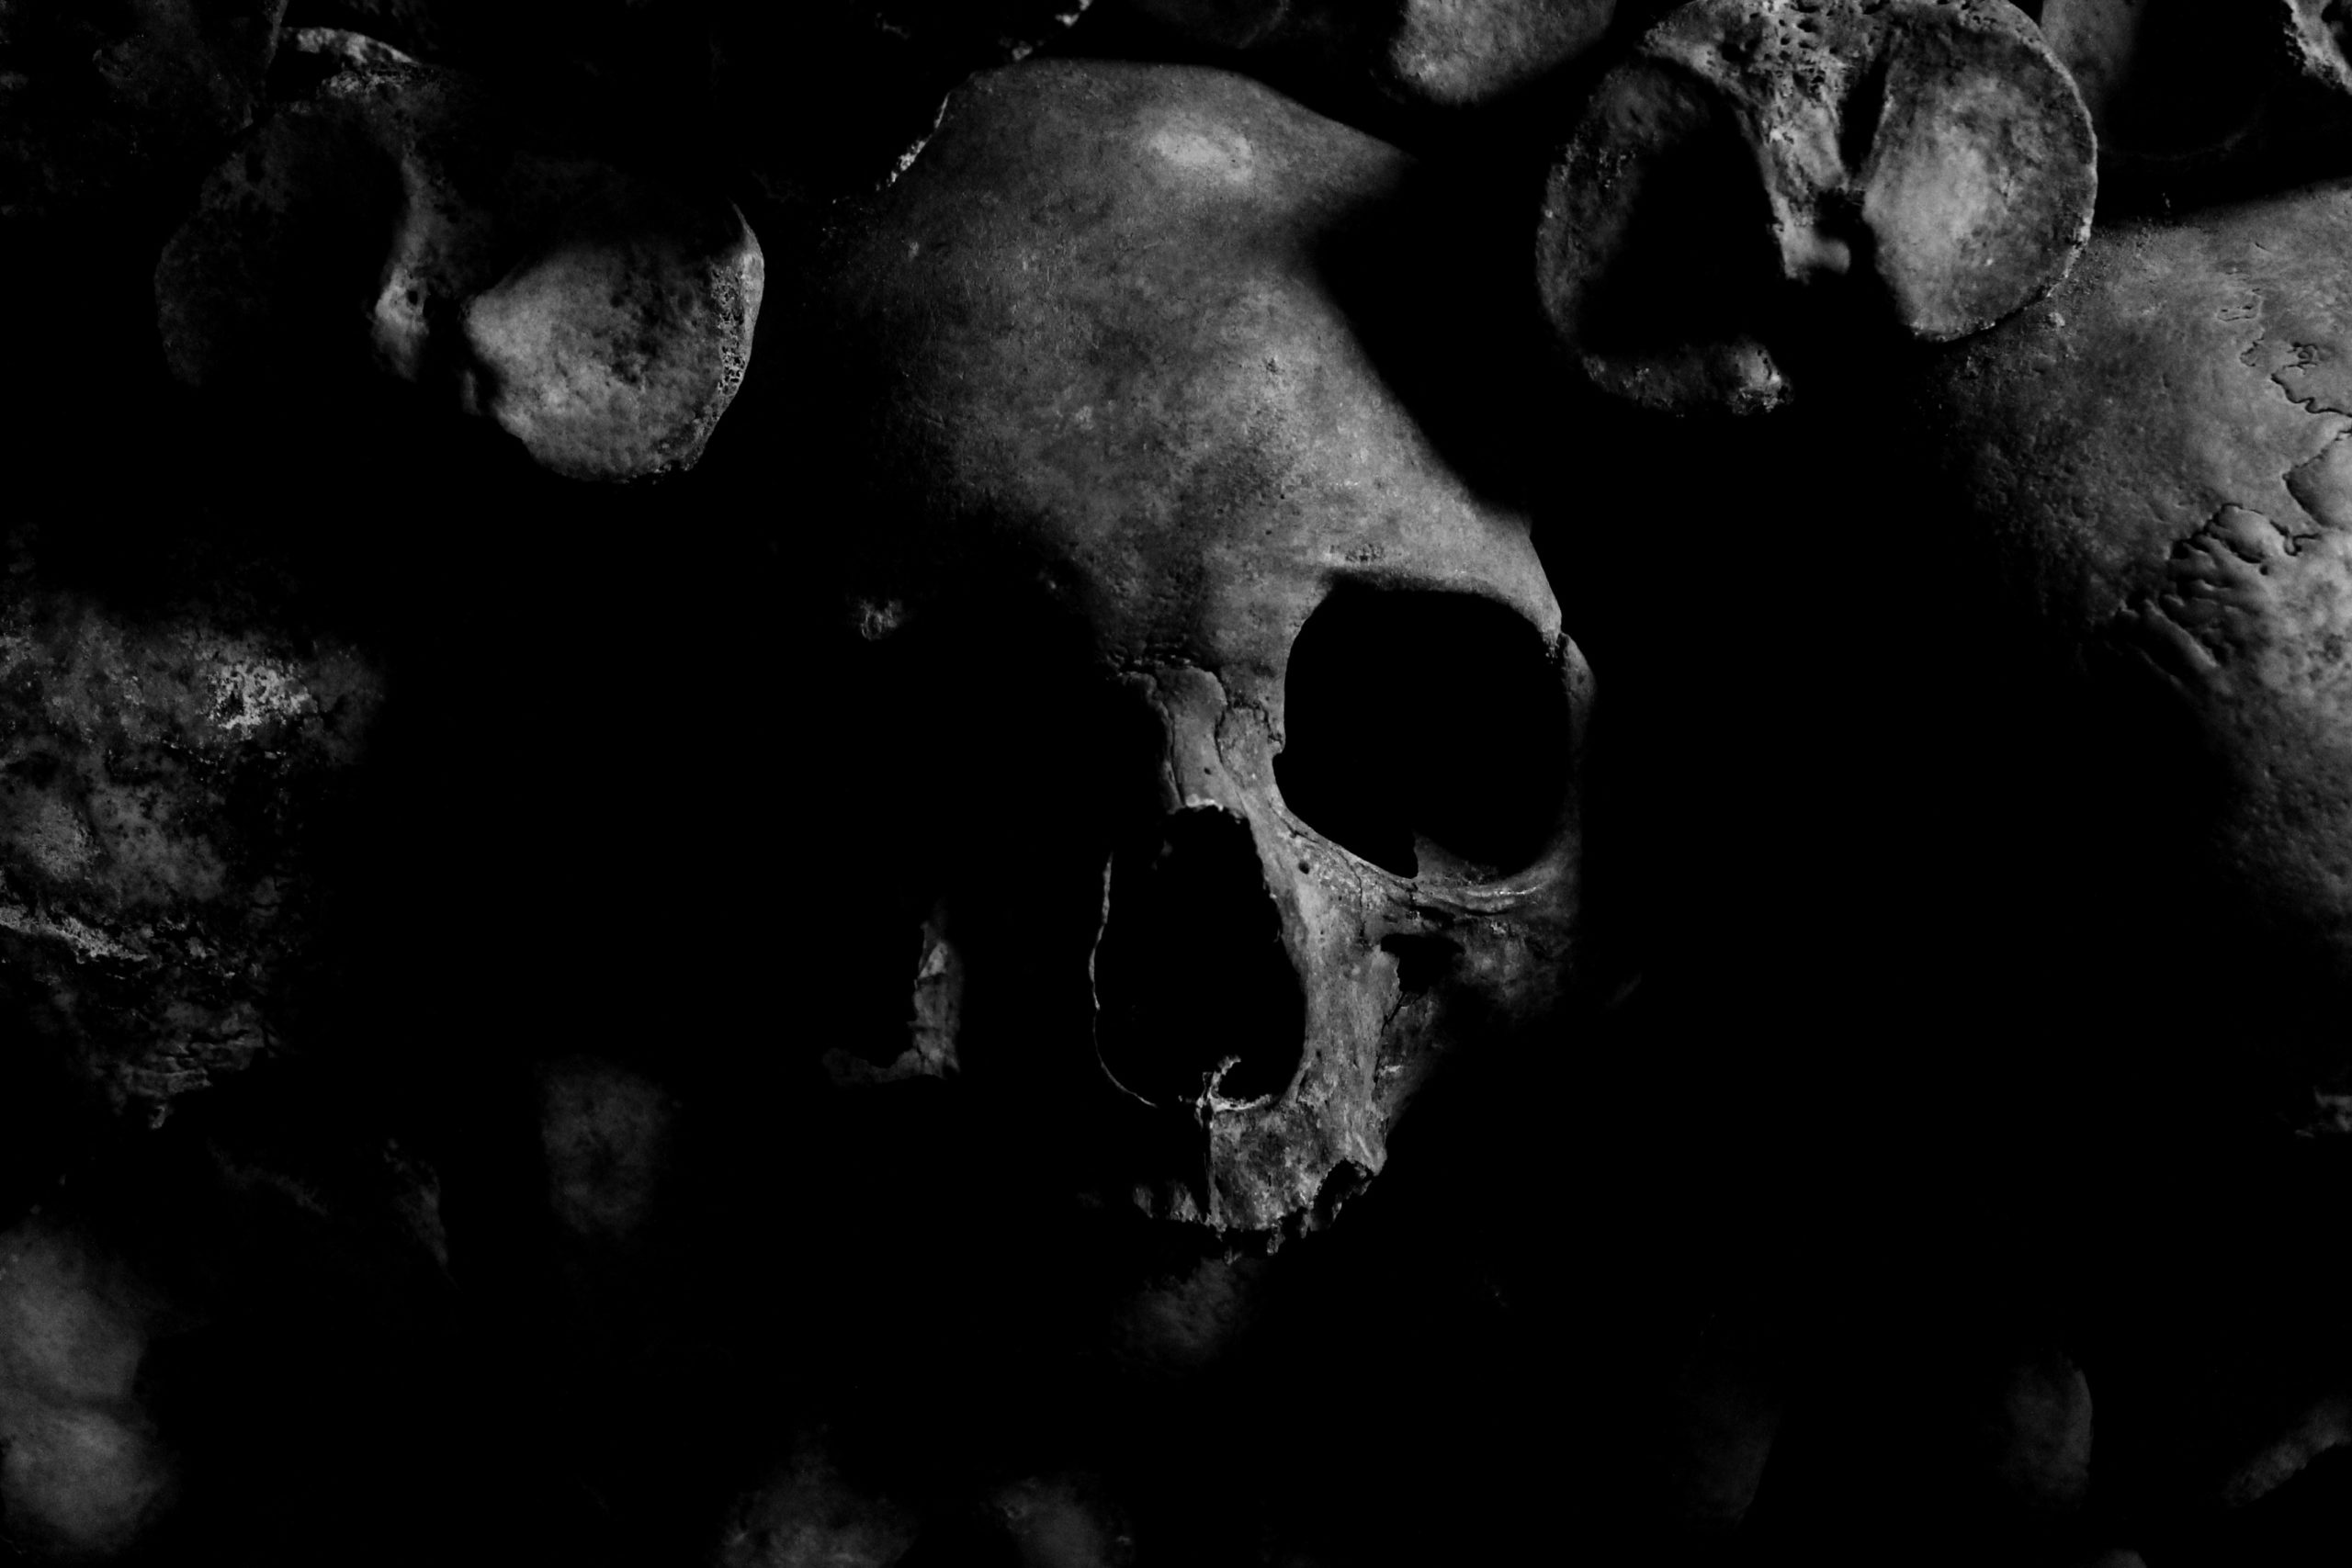 Image of a skull in the shadows